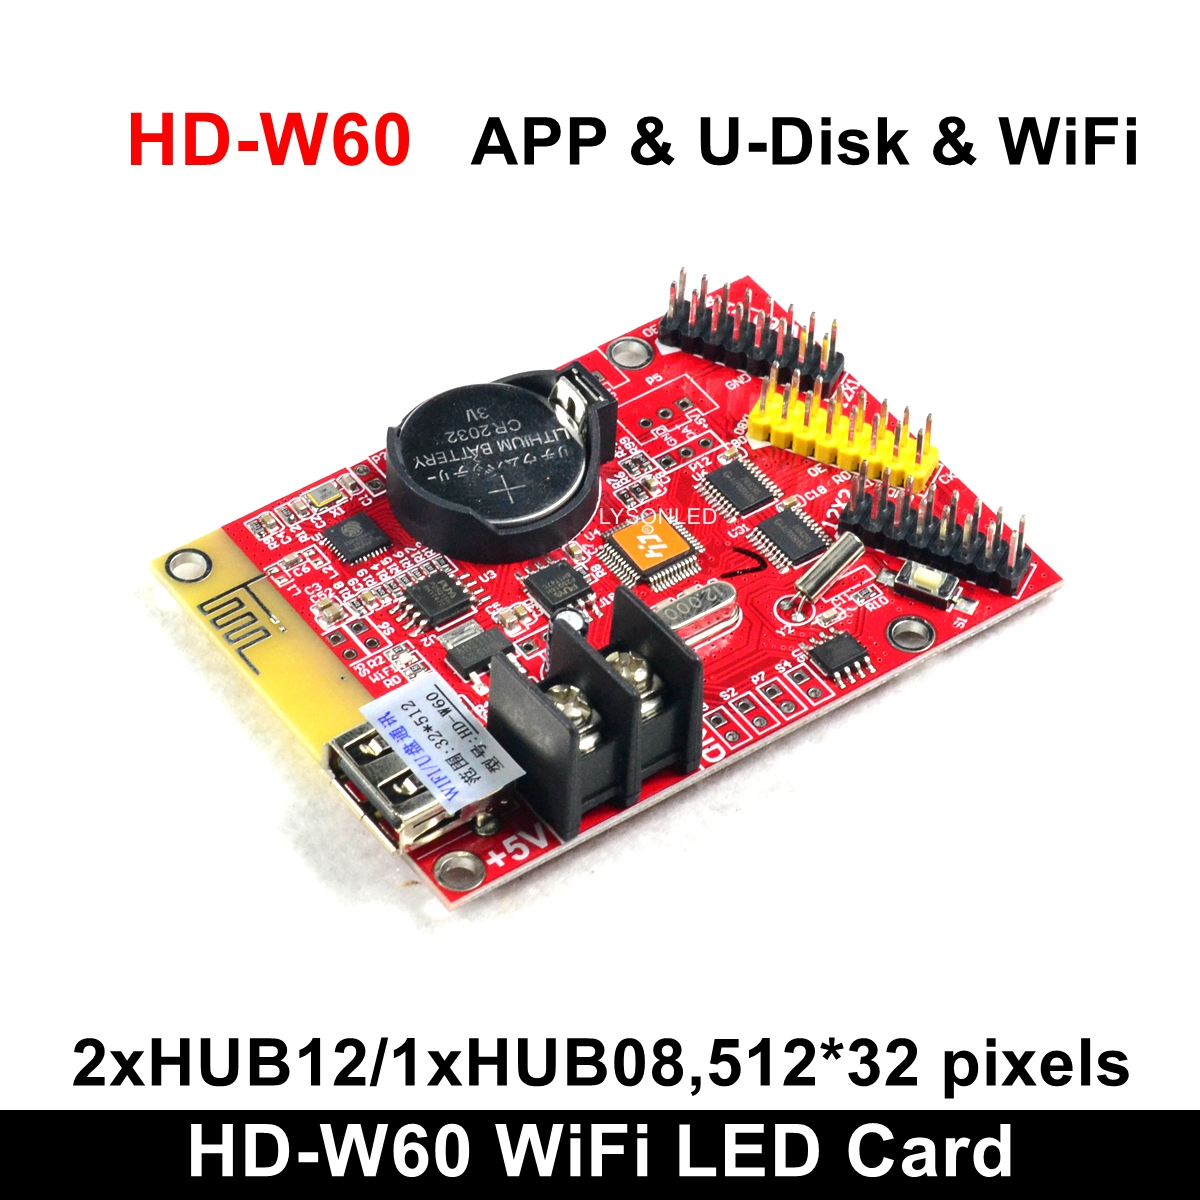 Huidu HD-W60 U-Disk Built-in WiFi Single Color Dual Color LED Display Control Card 32x512 Pixels Support (W61/W62/W63 On Sale)